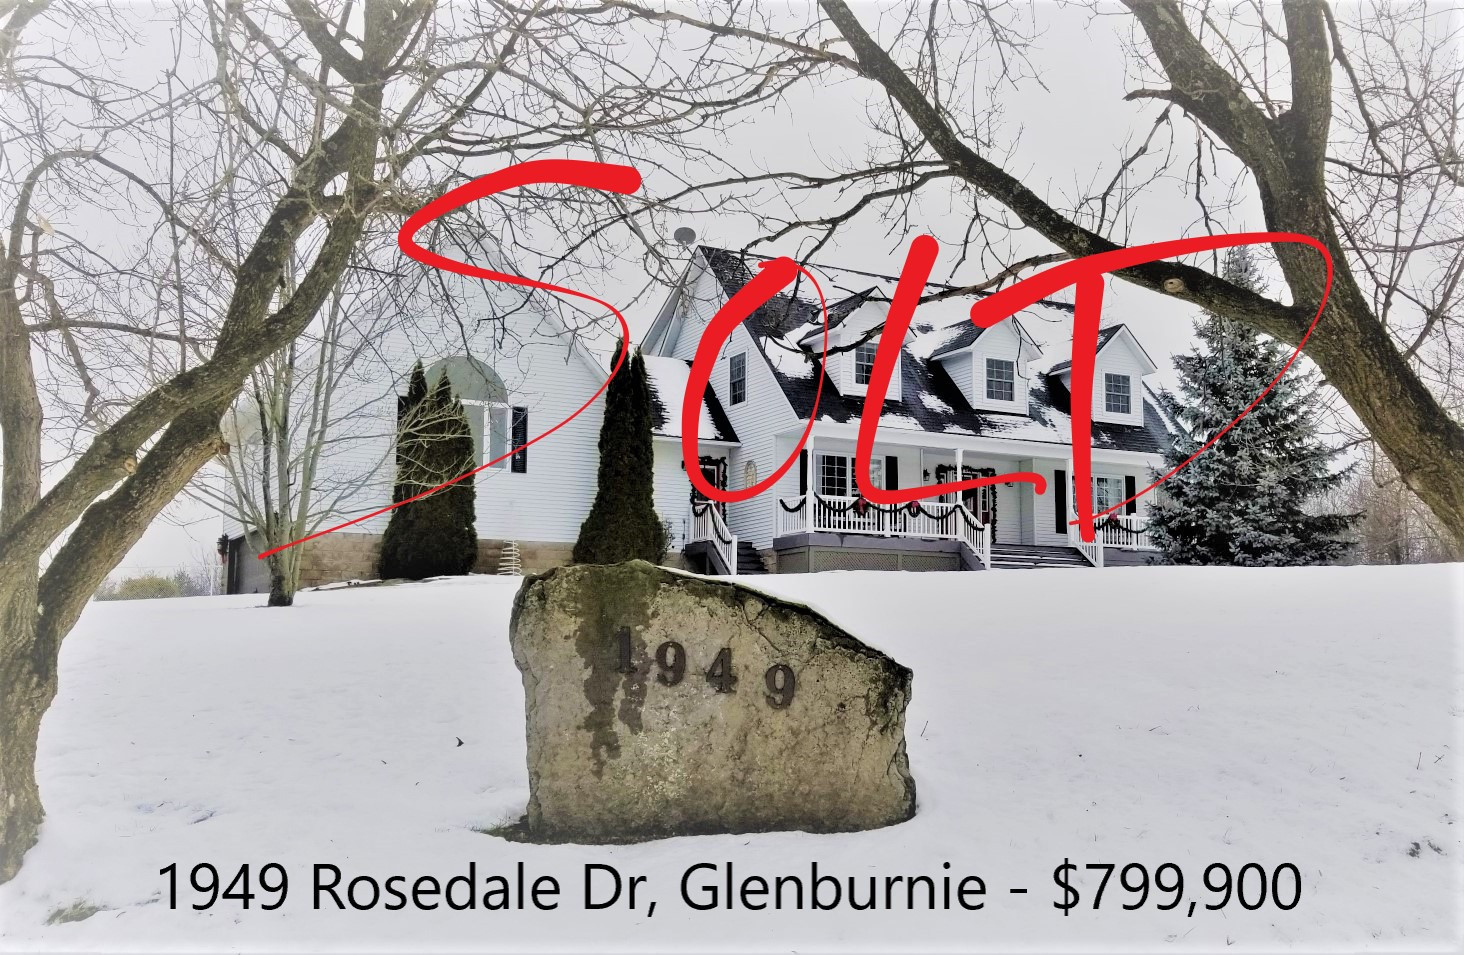 MLS listing YouTube Video - 1949 Rosedale Dr, Glenburnie